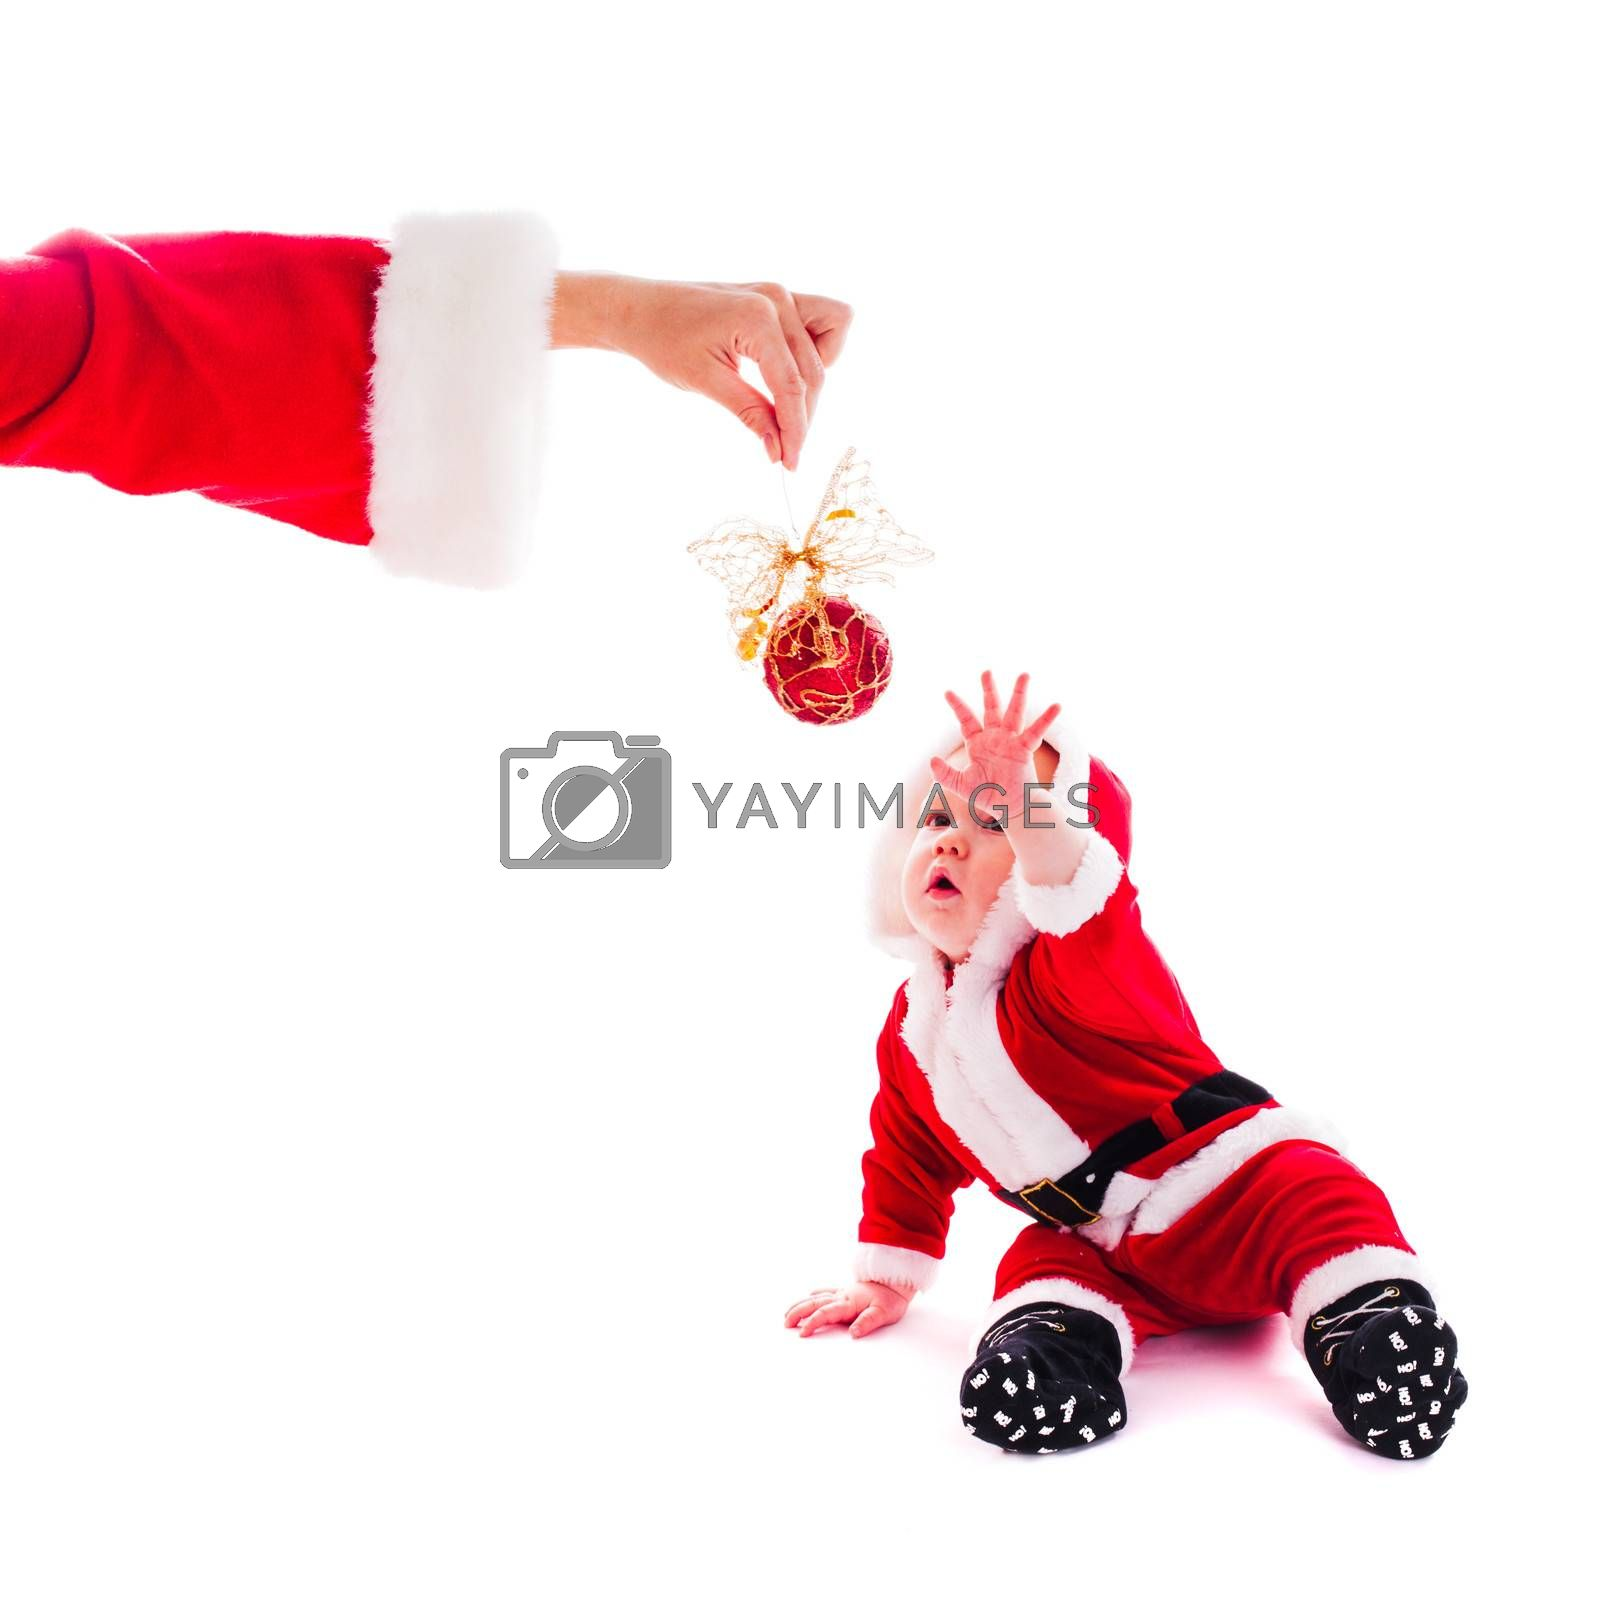 Little Santa boy wants to play isolated on white background